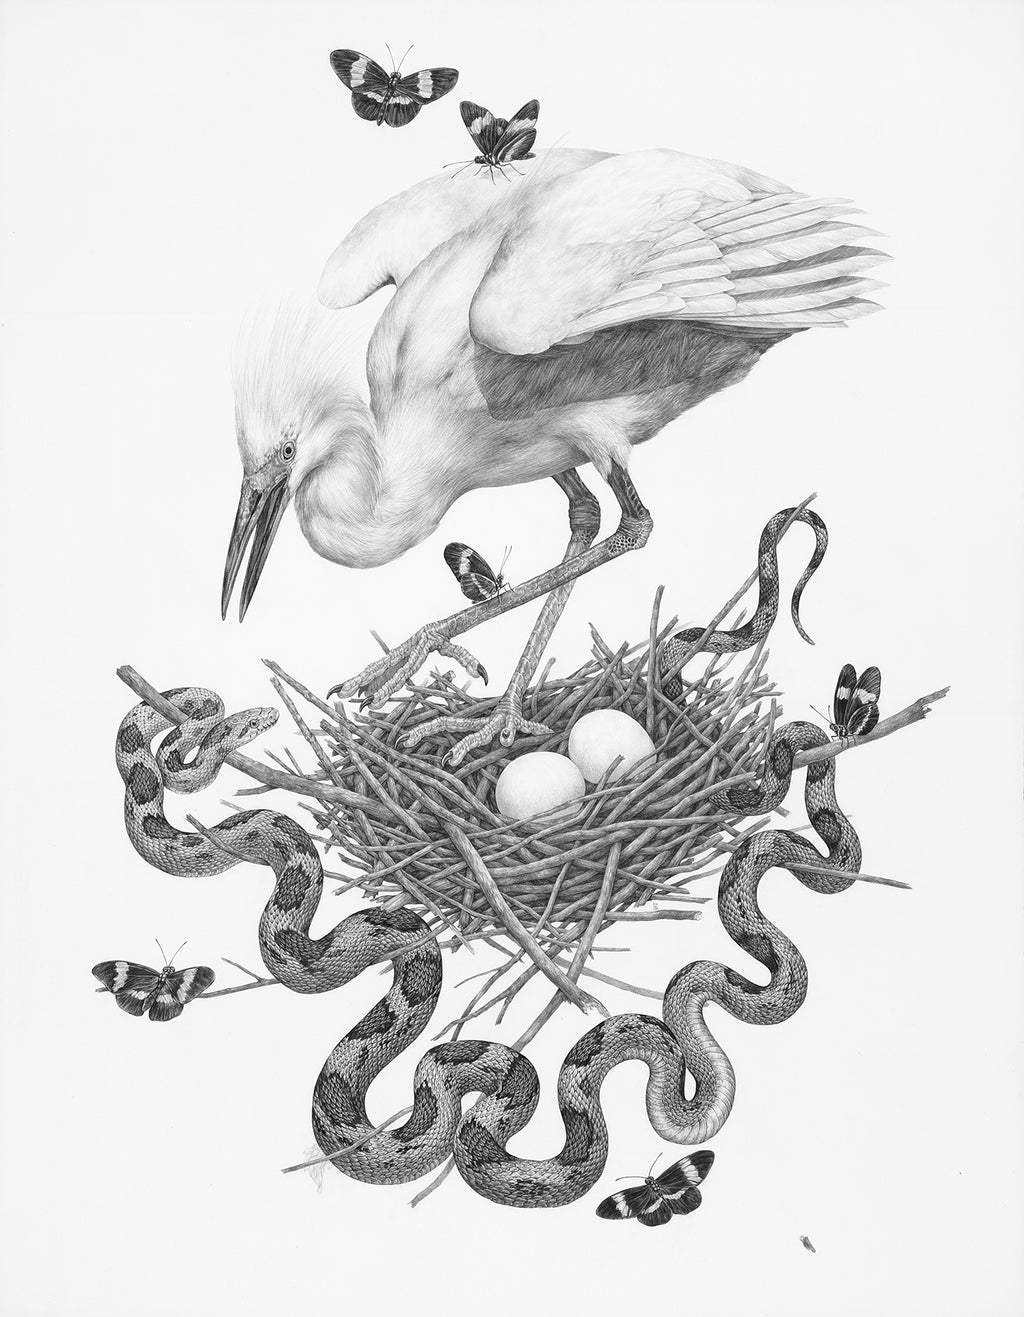 Zoe Keller - Snowy Egret, Gray Rat Snake and Red Postman Butterfly